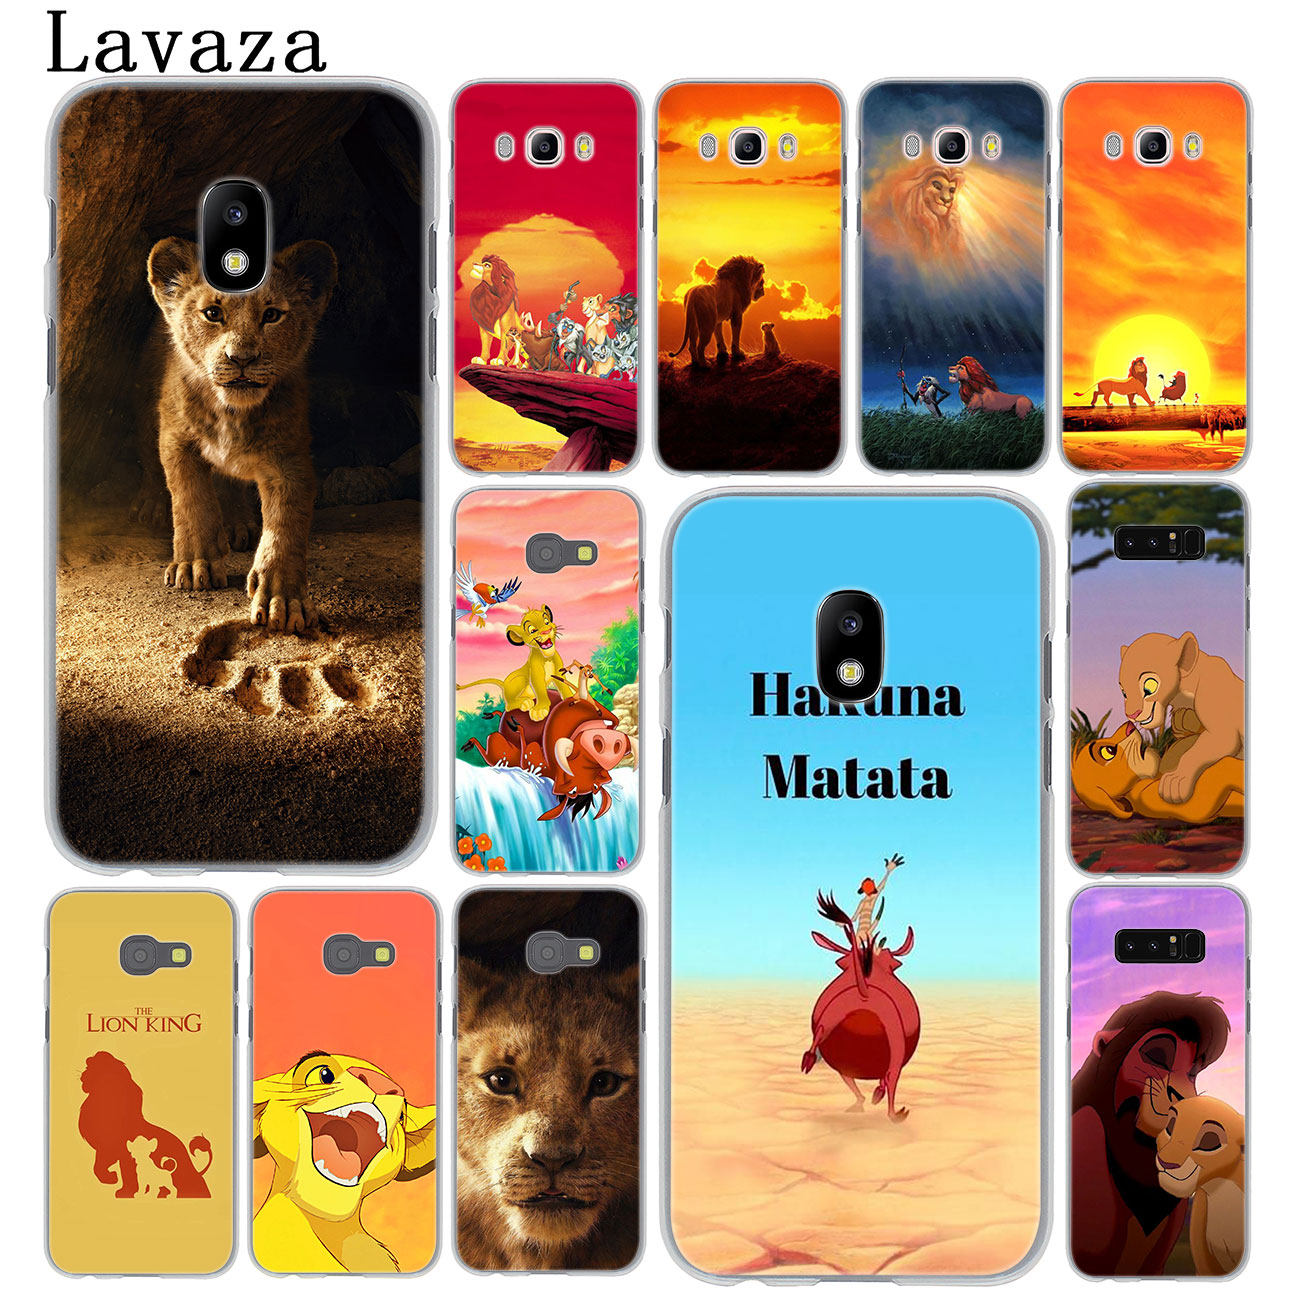 Lavaza Cartoon The lion king Cute <font><b>Phone</b></font> <font><b>Case</b></font> for <font><b>Samsung</b></font> <font><b>Galaxy</b></font> J8 J7 Duo J6 <font><b>J5</b></font> J4 Plus 2018 2017 <font><b>2016</b></font> J2 J3 Prime 2015 Cover image